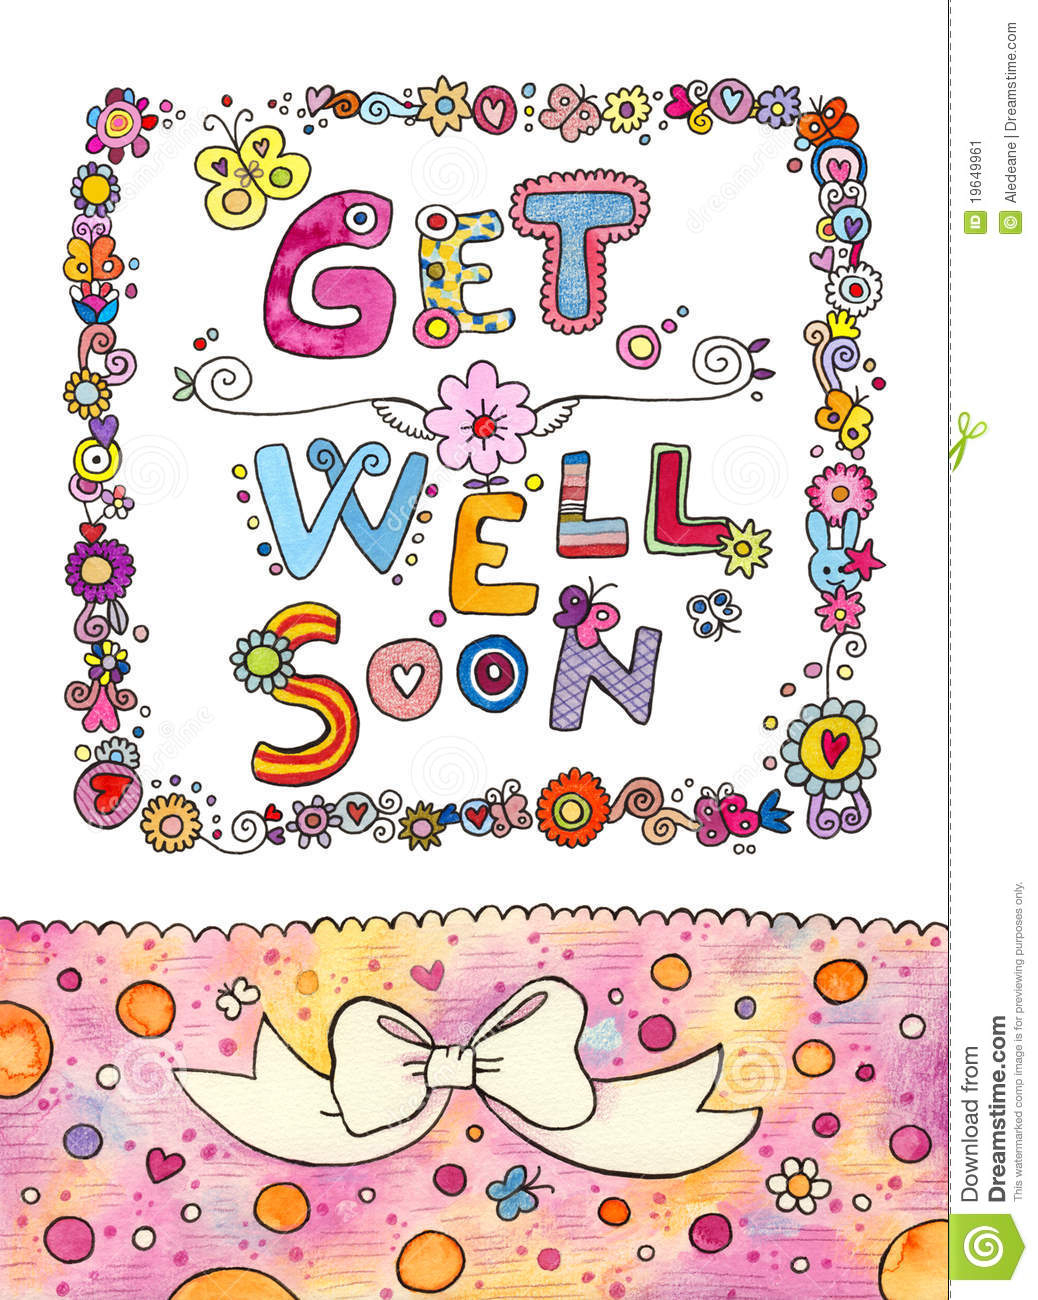 Get Well Soon Card Stock Illustration. Illustration Of Cute - 19649961 - Free Printable Get Well Soon Cards